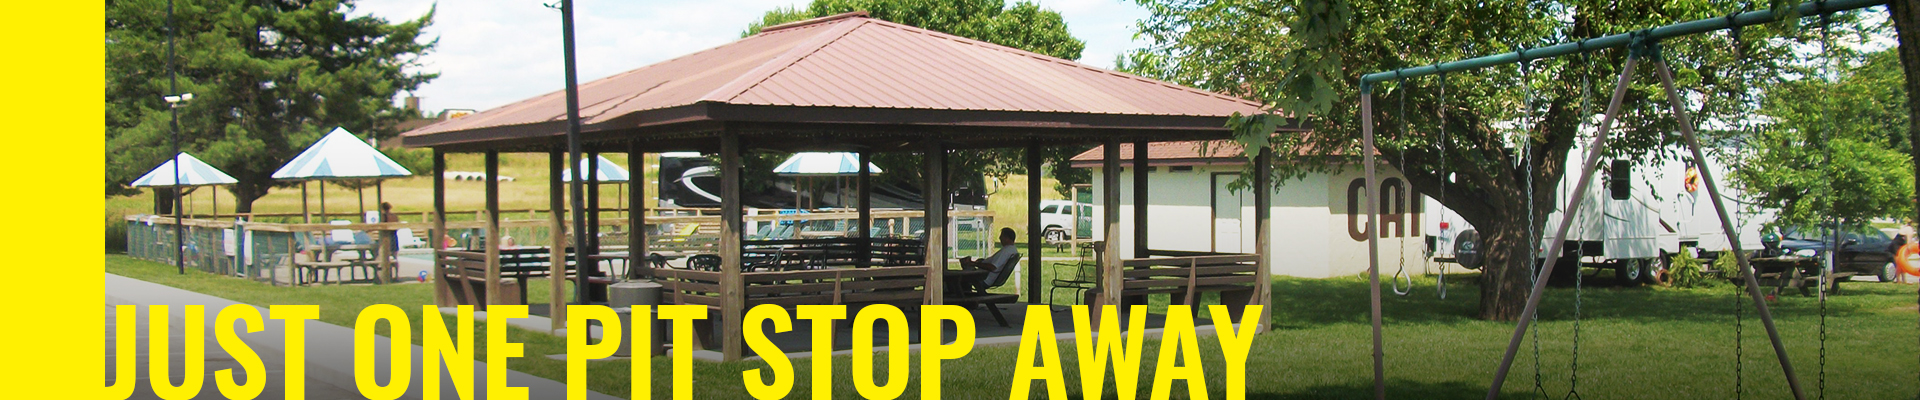 Westgate RV Campground in London, KY for RVers